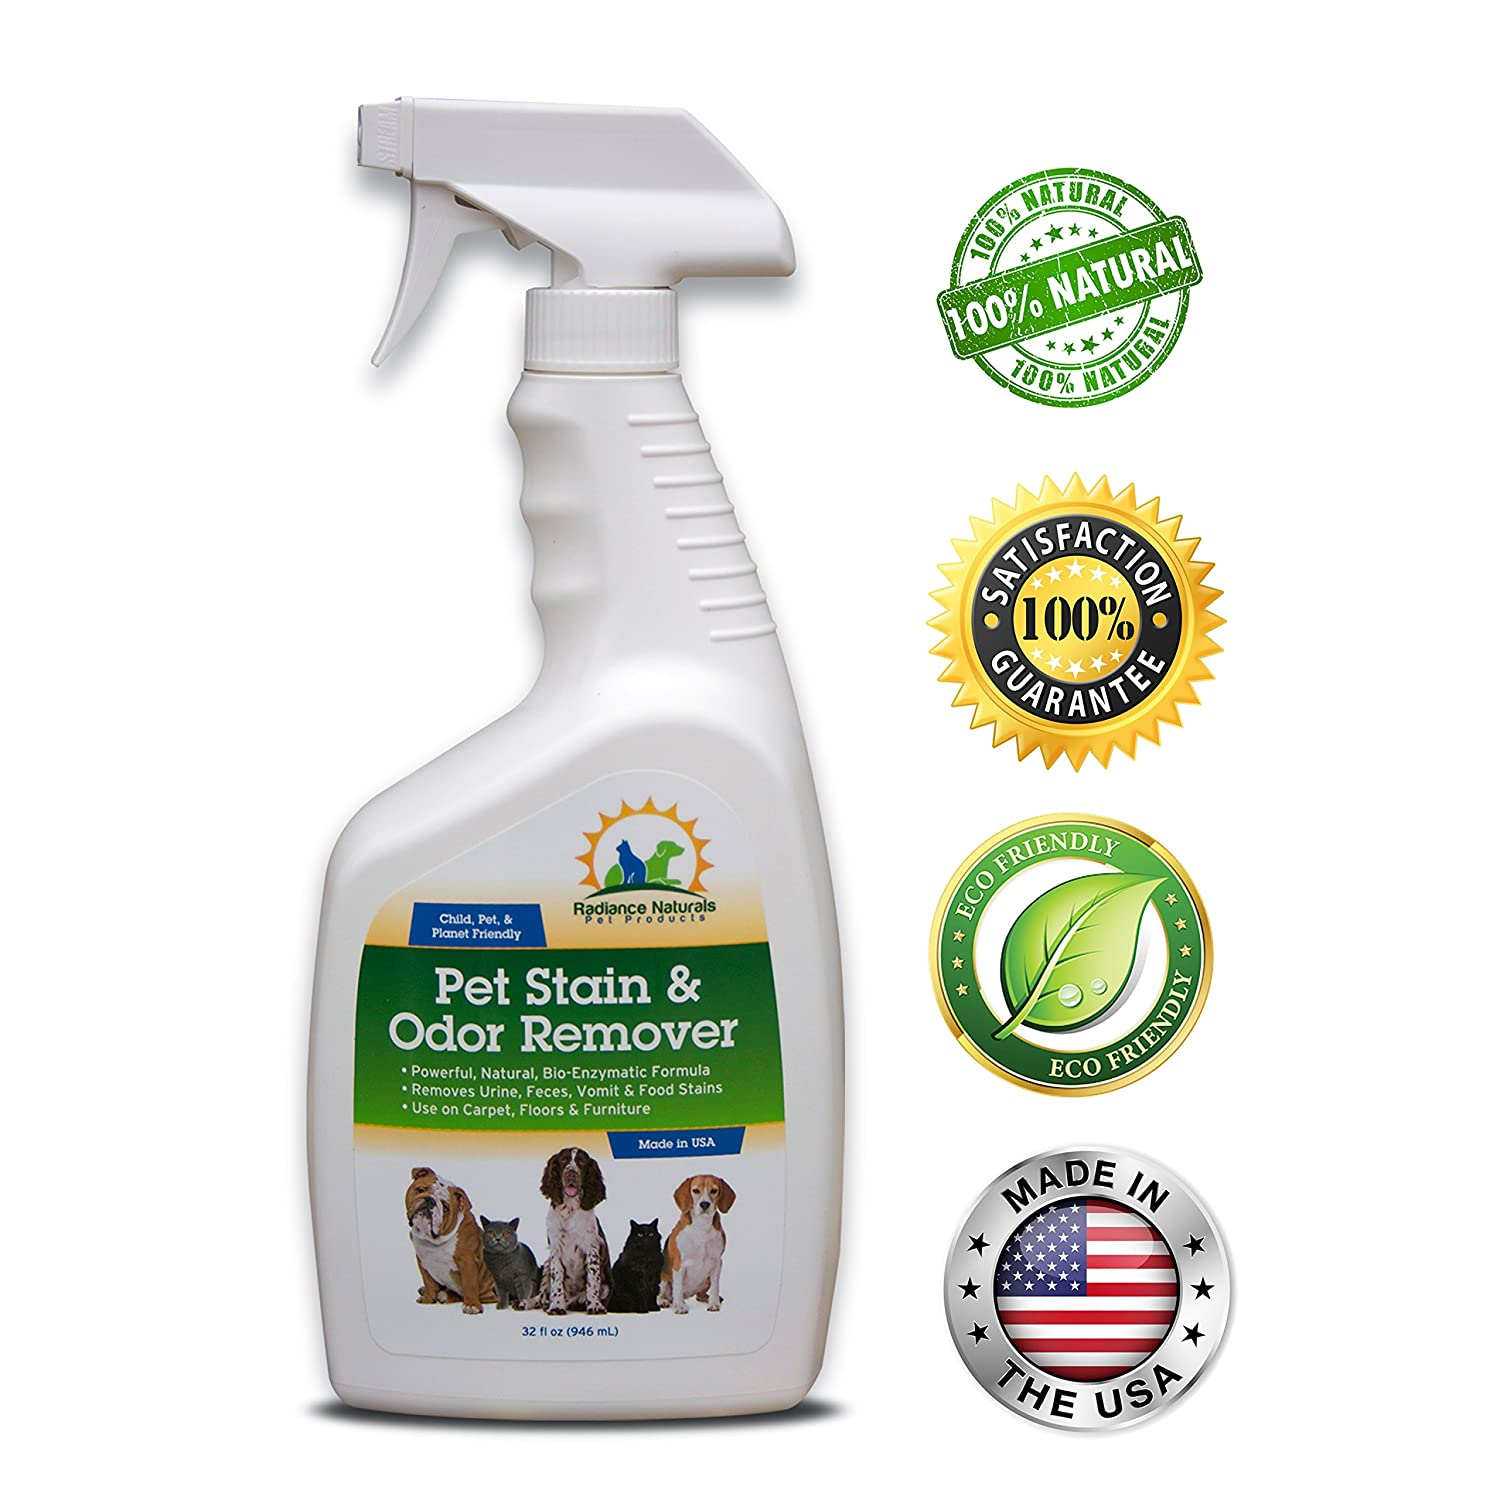 Best Carpet Cleaners For Pets Reviewed - Clean homes ahoy!